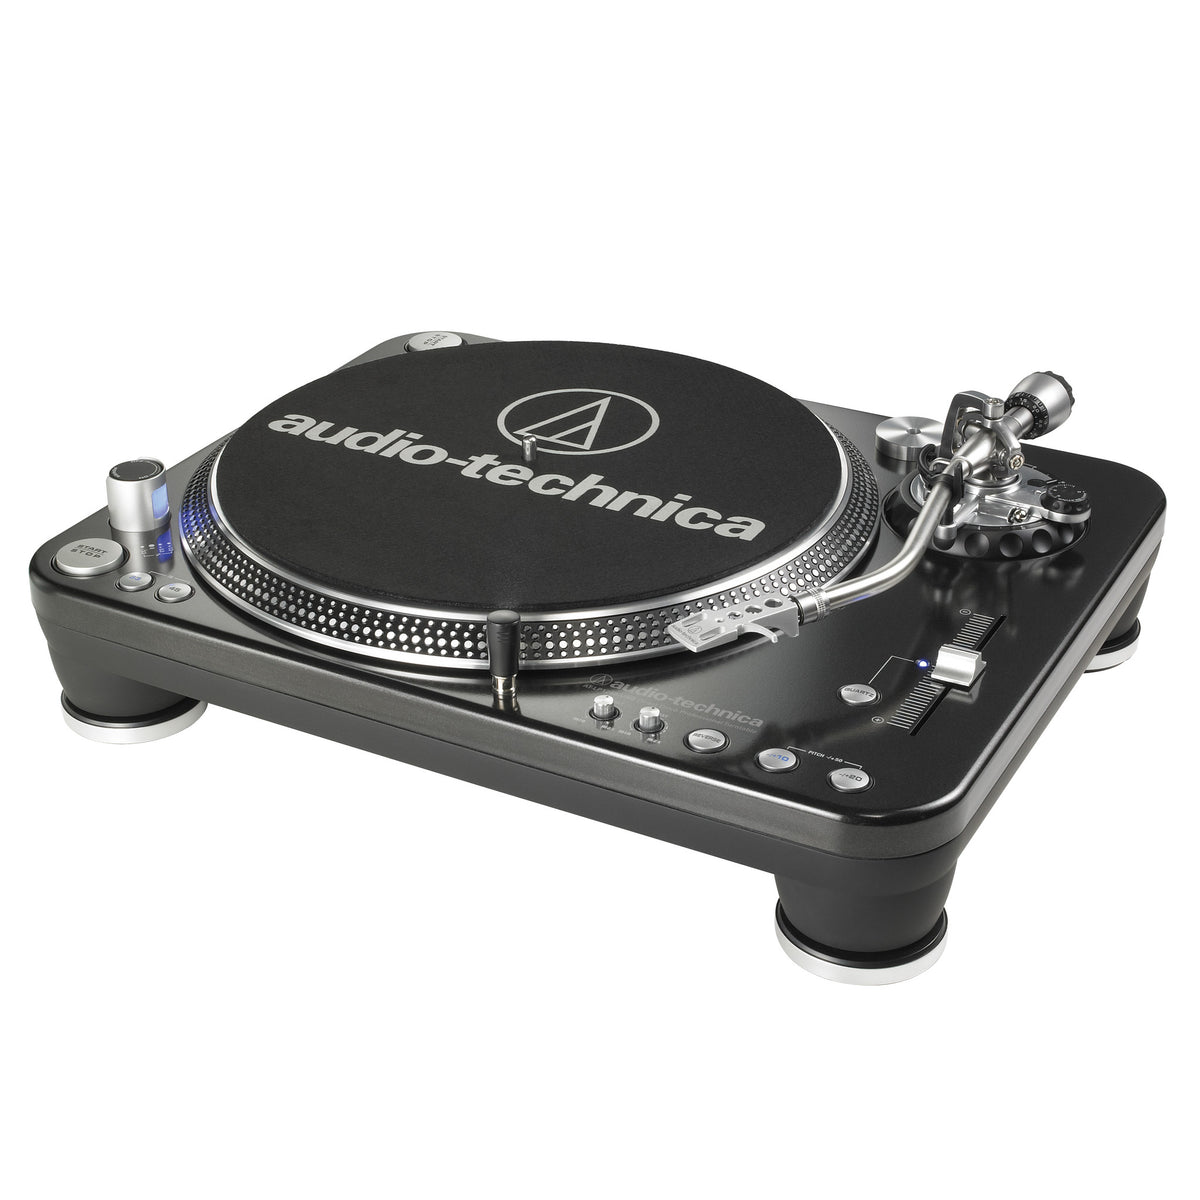 Audio-Technica: AT-LP1240-USB DJ Turntable + Free Lab Pack